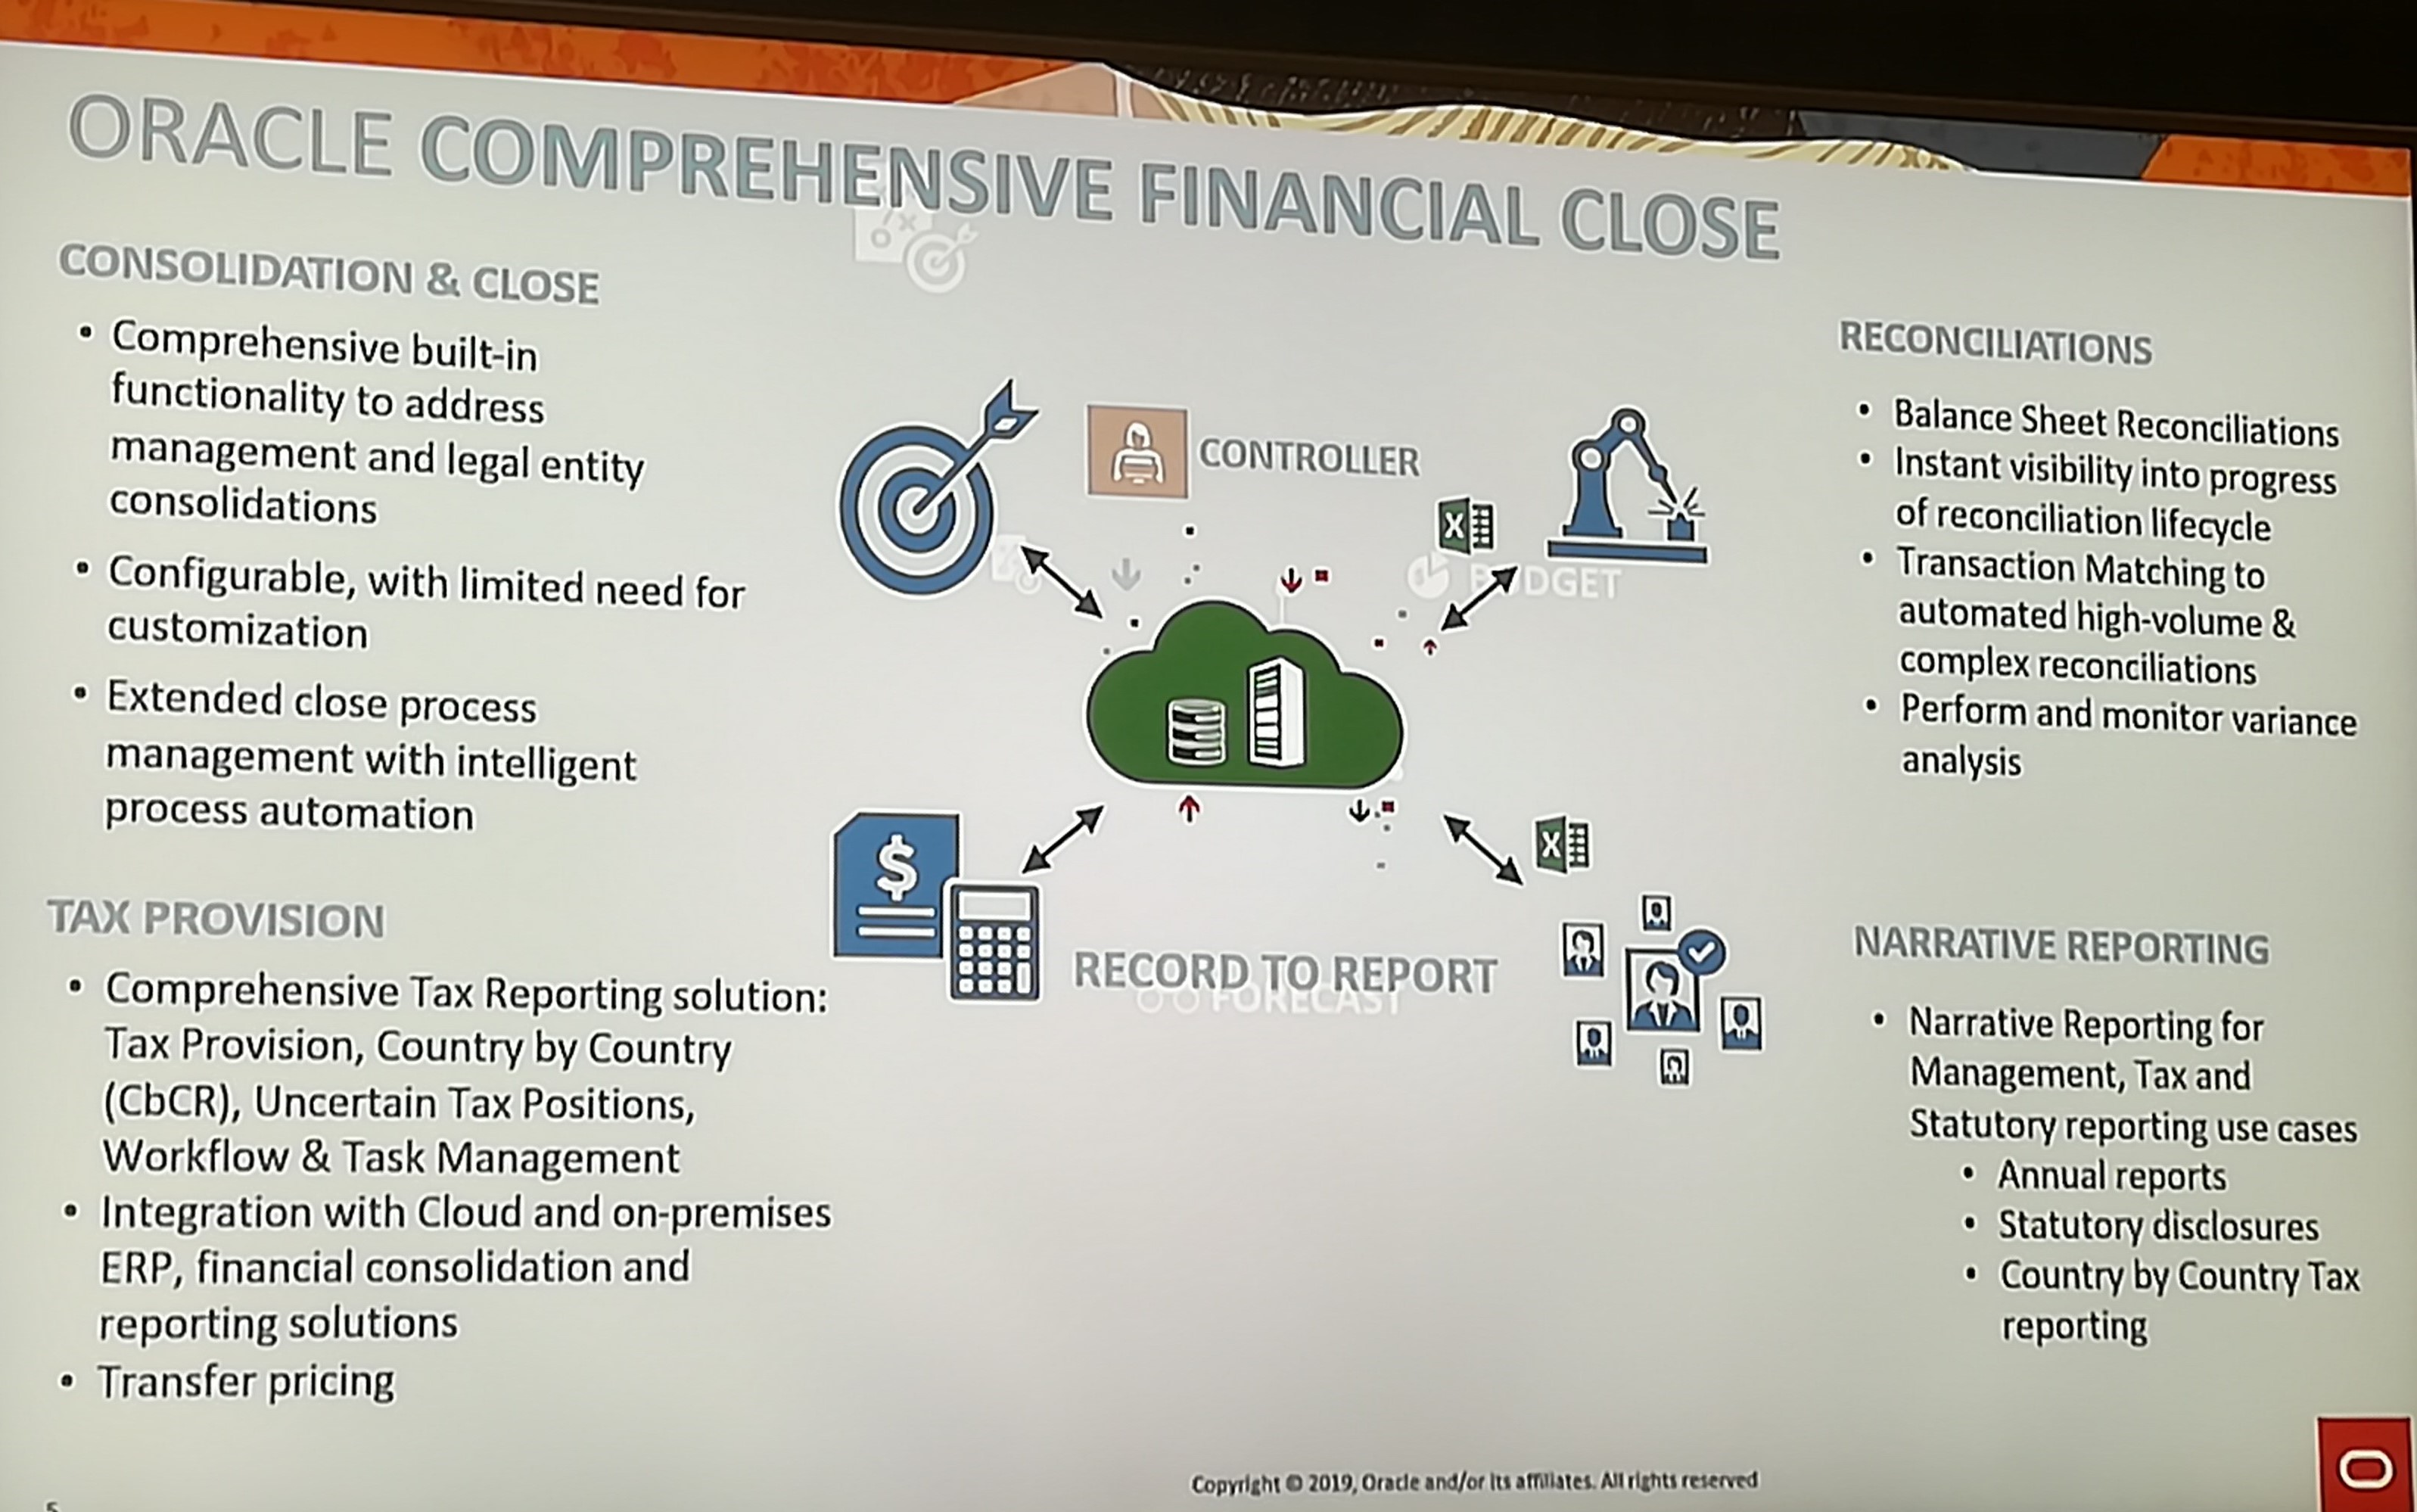 Oracle Open World 2019 - Oracle Comprehensive Financial Close